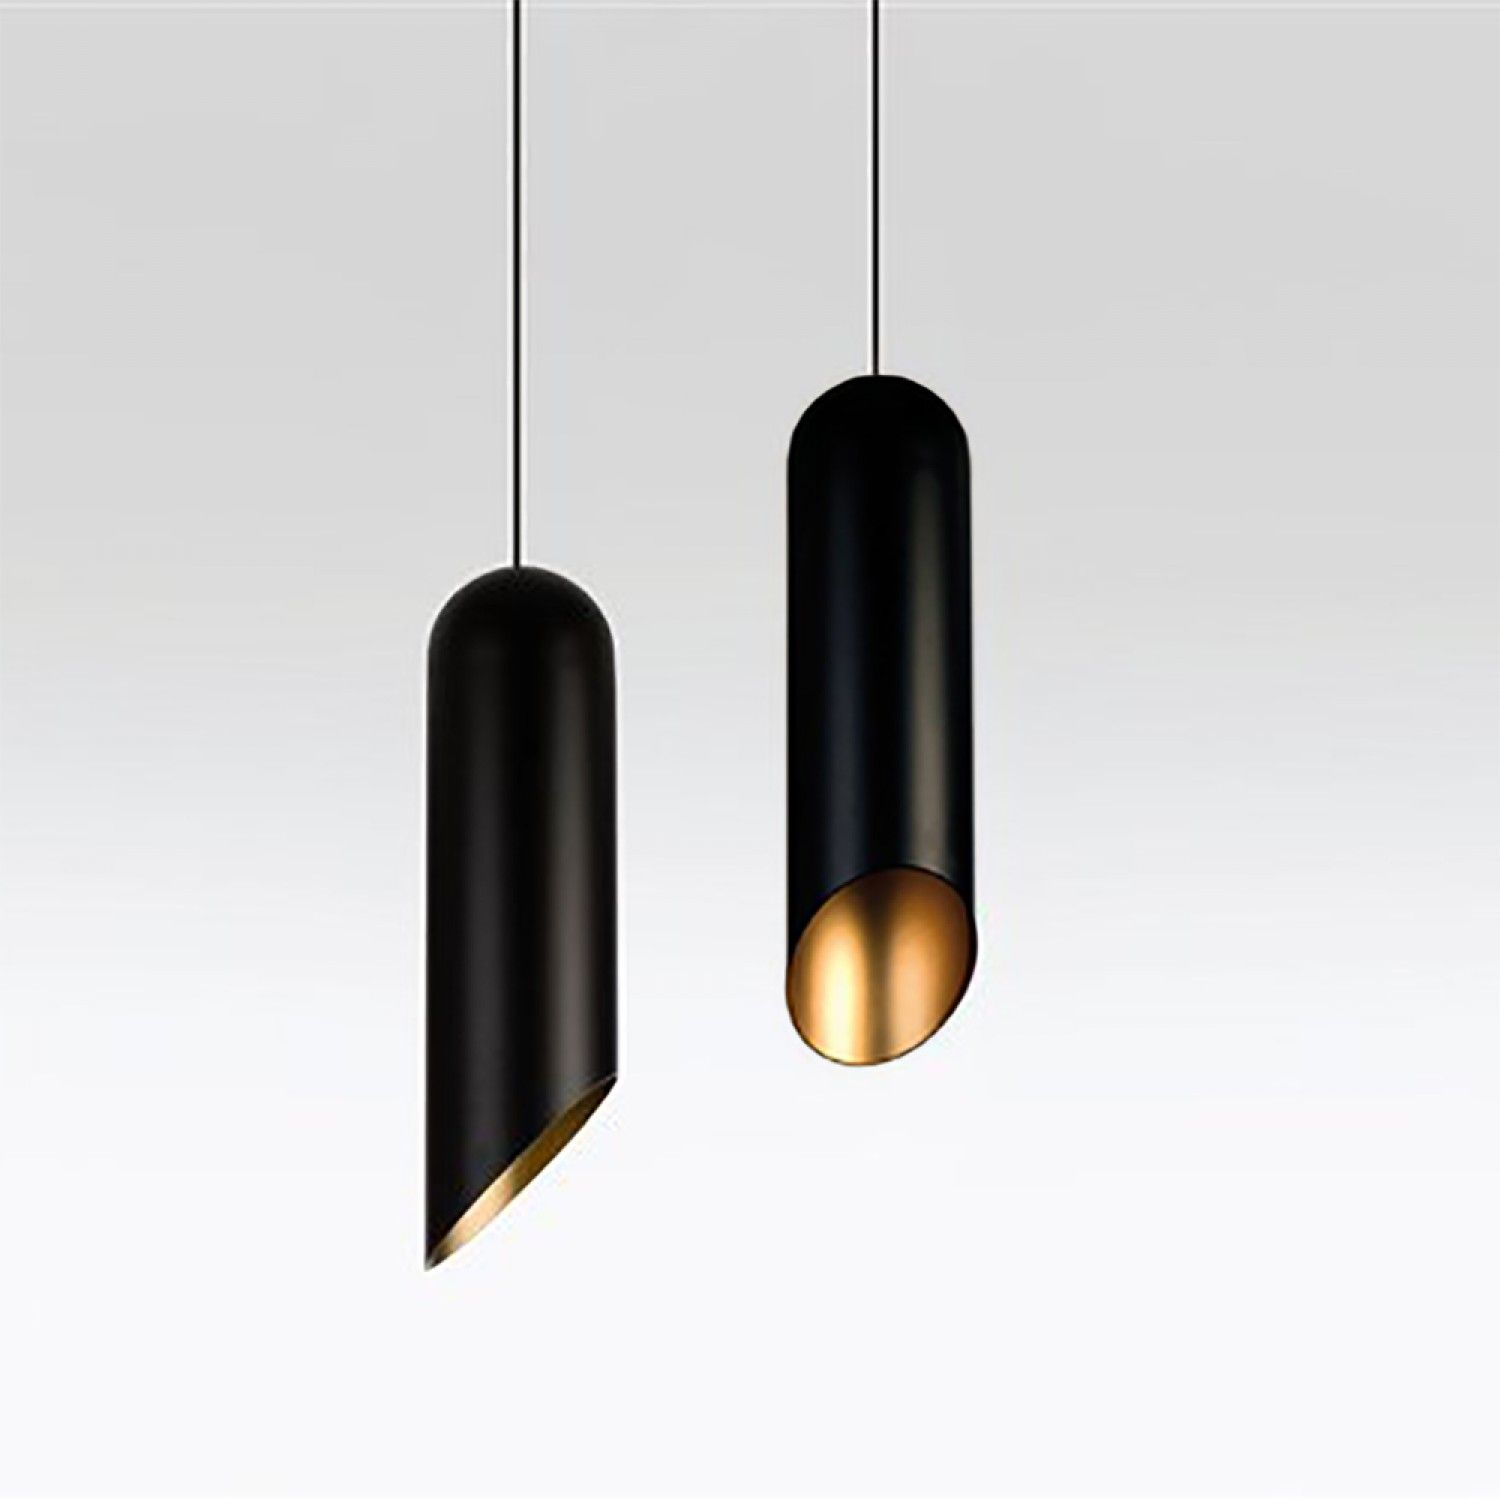 tom dixon 39 pipe light 39 mydesignagenda designevents maisonobjet luminaires pinterest. Black Bedroom Furniture Sets. Home Design Ideas